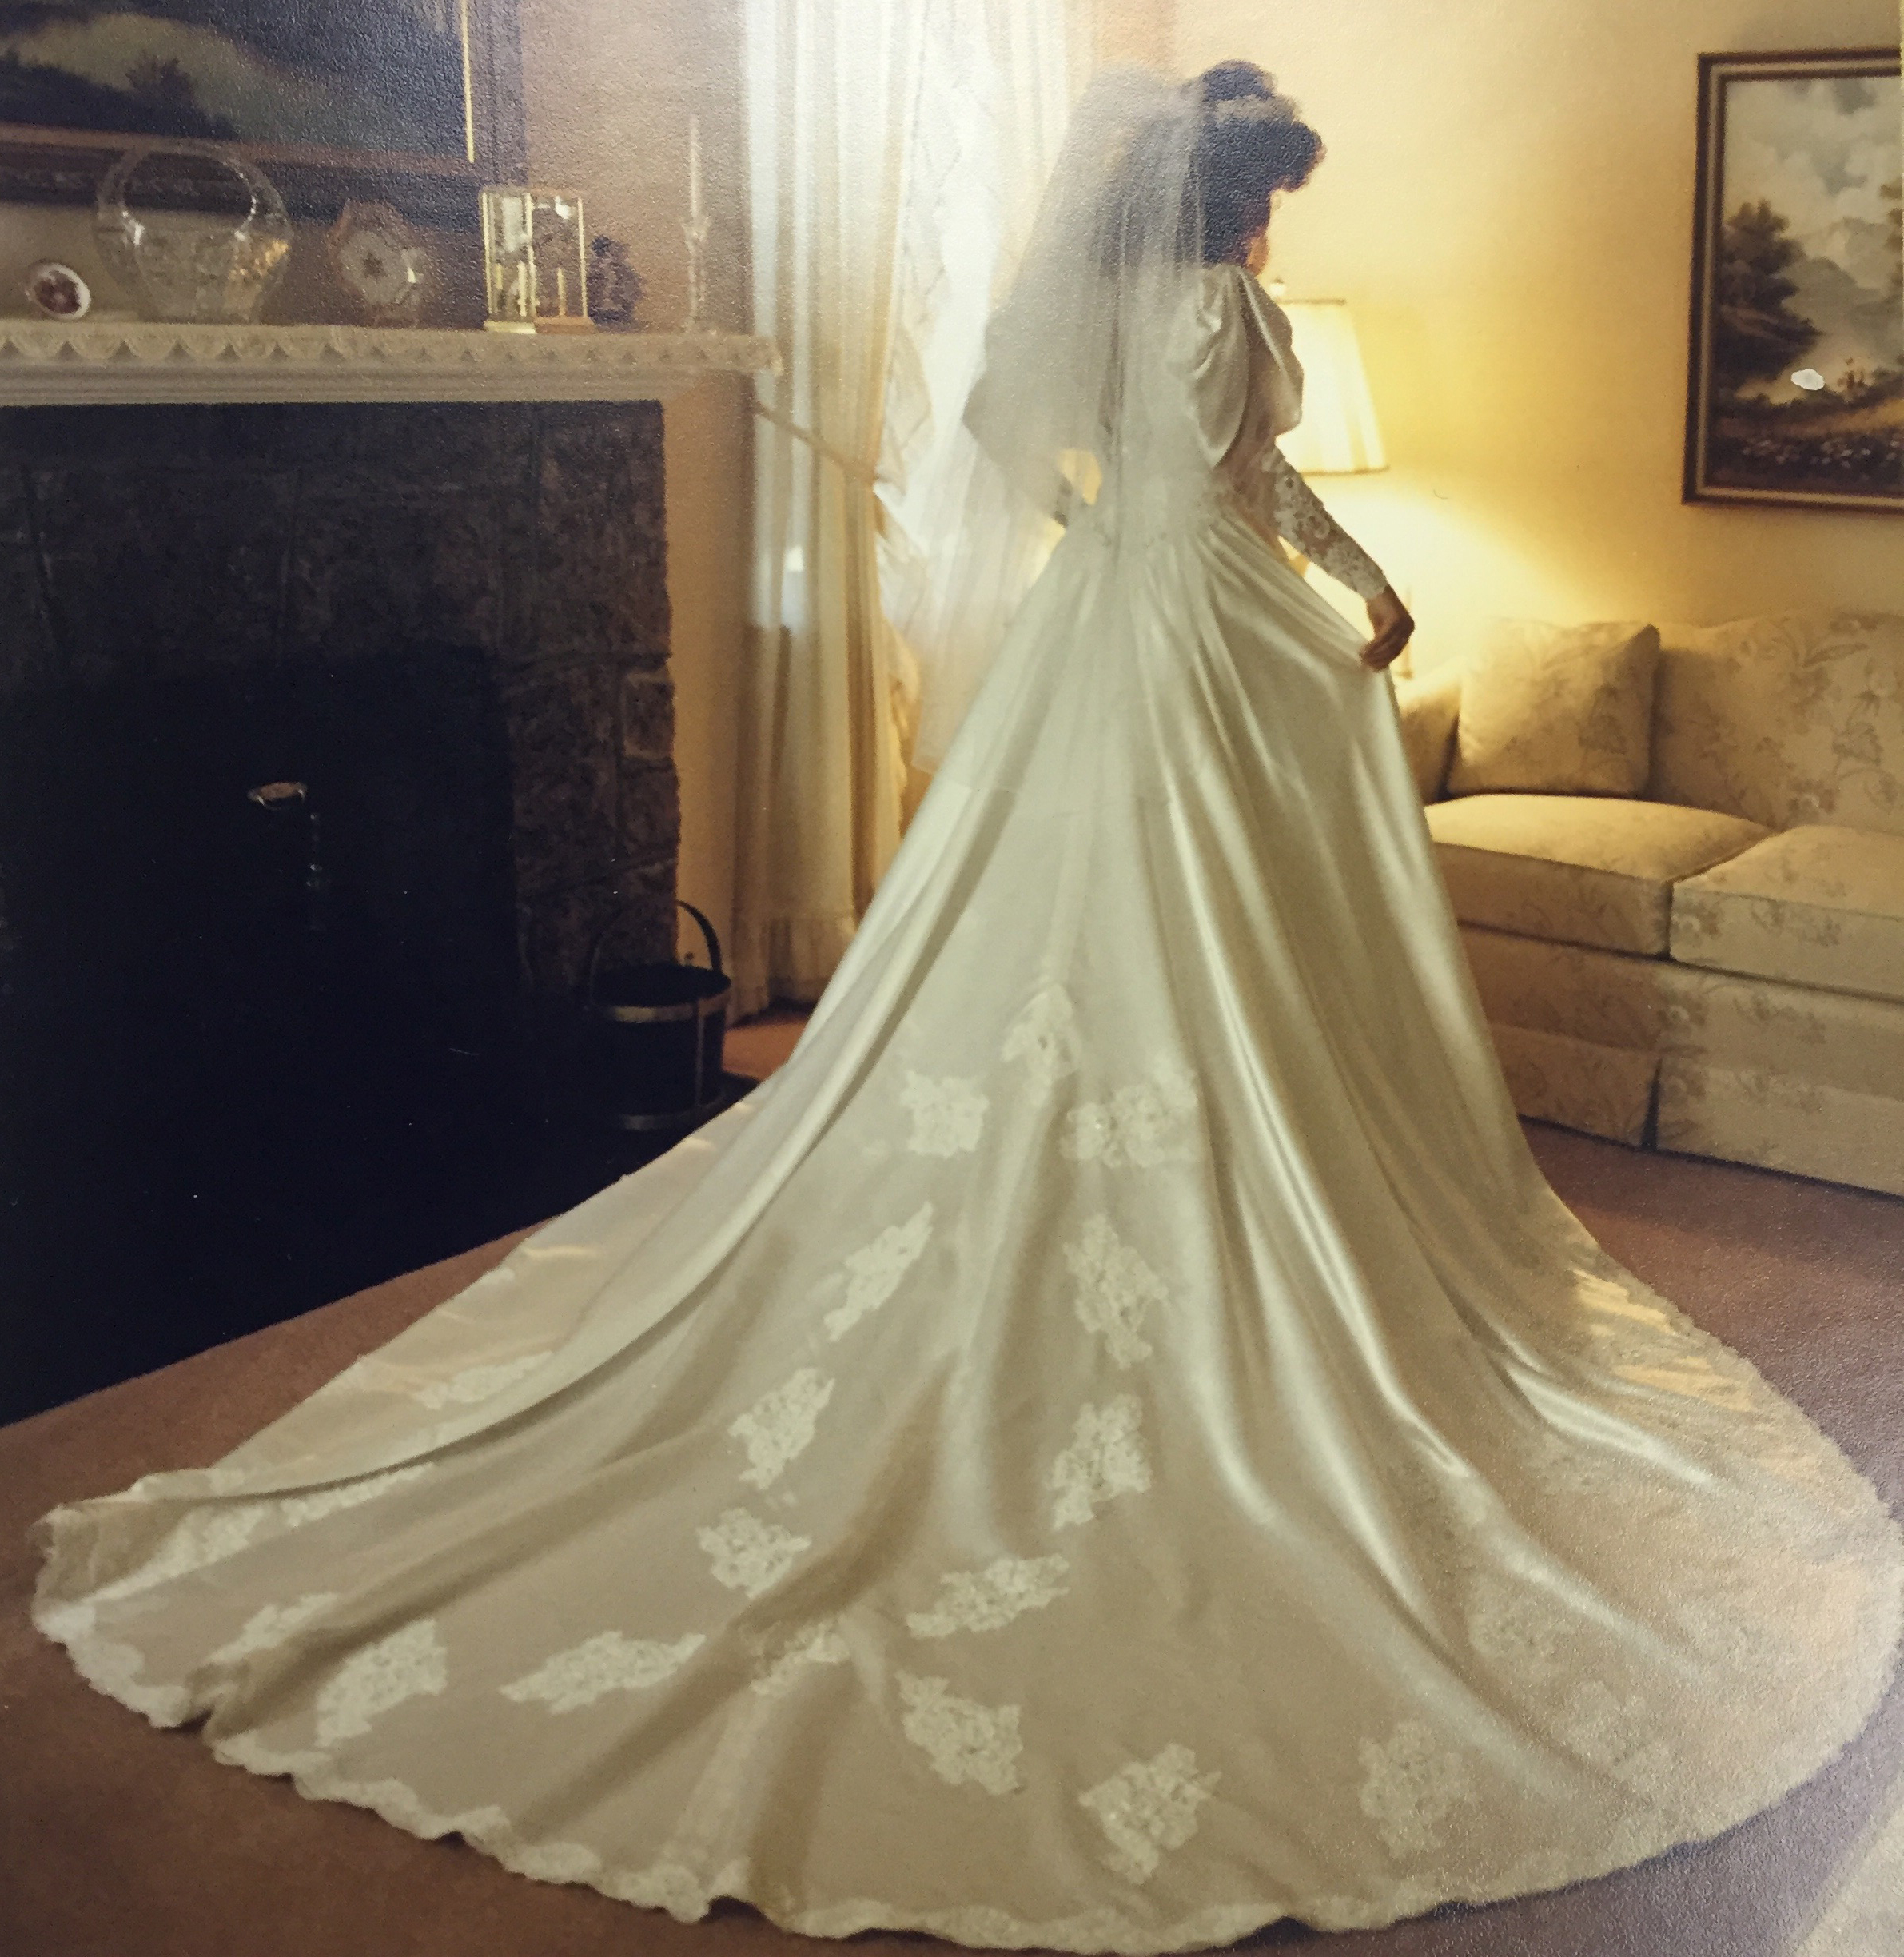 Best Wedding Gown Preservation: Dry Cleaning East Northport, NY ( New York )